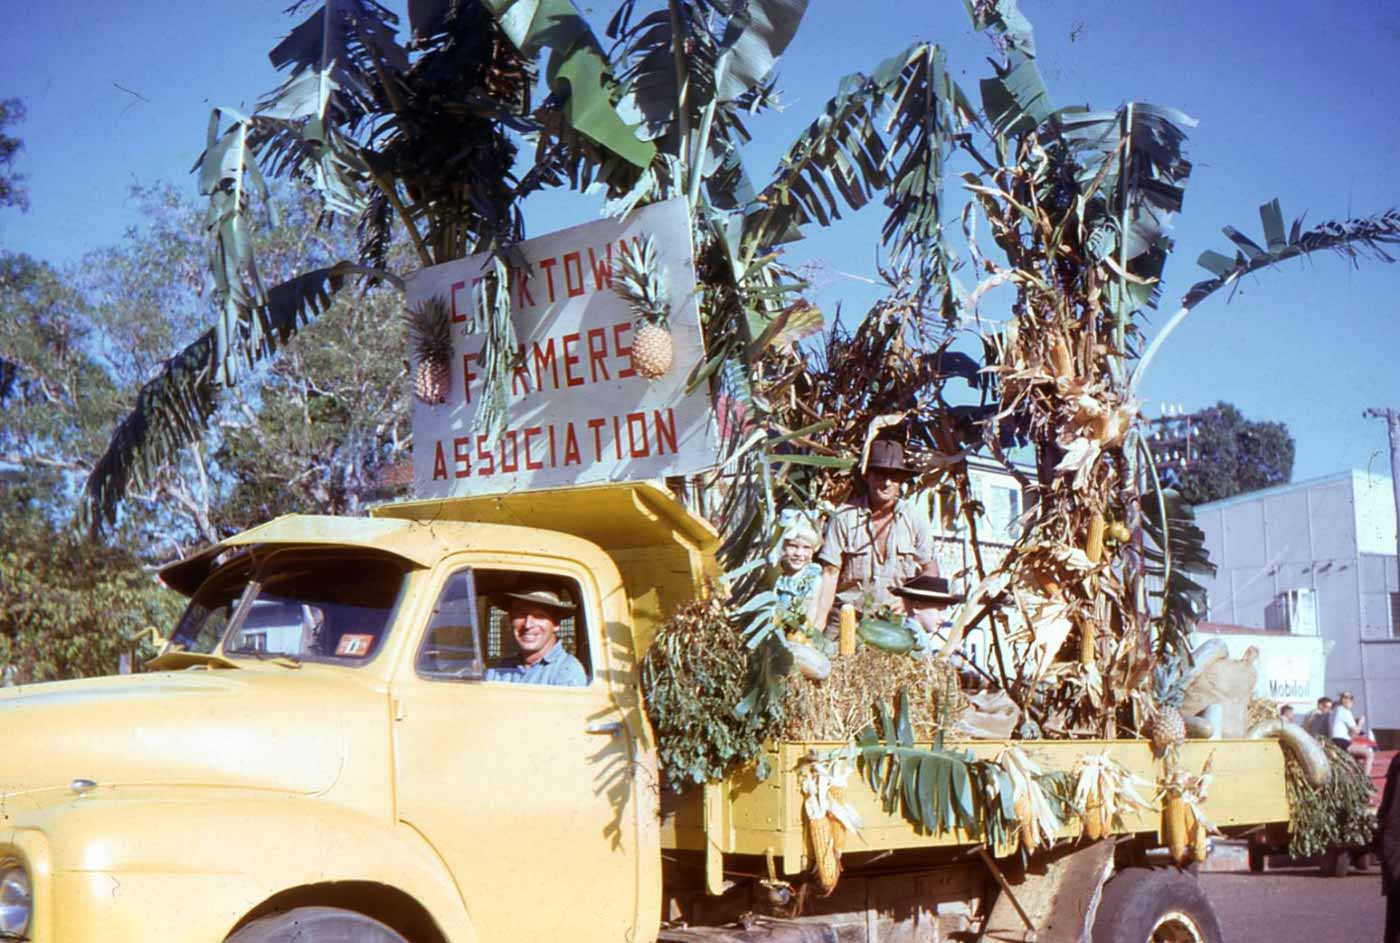 Colour photo of a yellow truck transformed into a parade float carrying people sitting amongst palms and hay bales. There is a sign that reads 'COOKTOWN FARMERS ASSOCIATION'. - click to view larger image